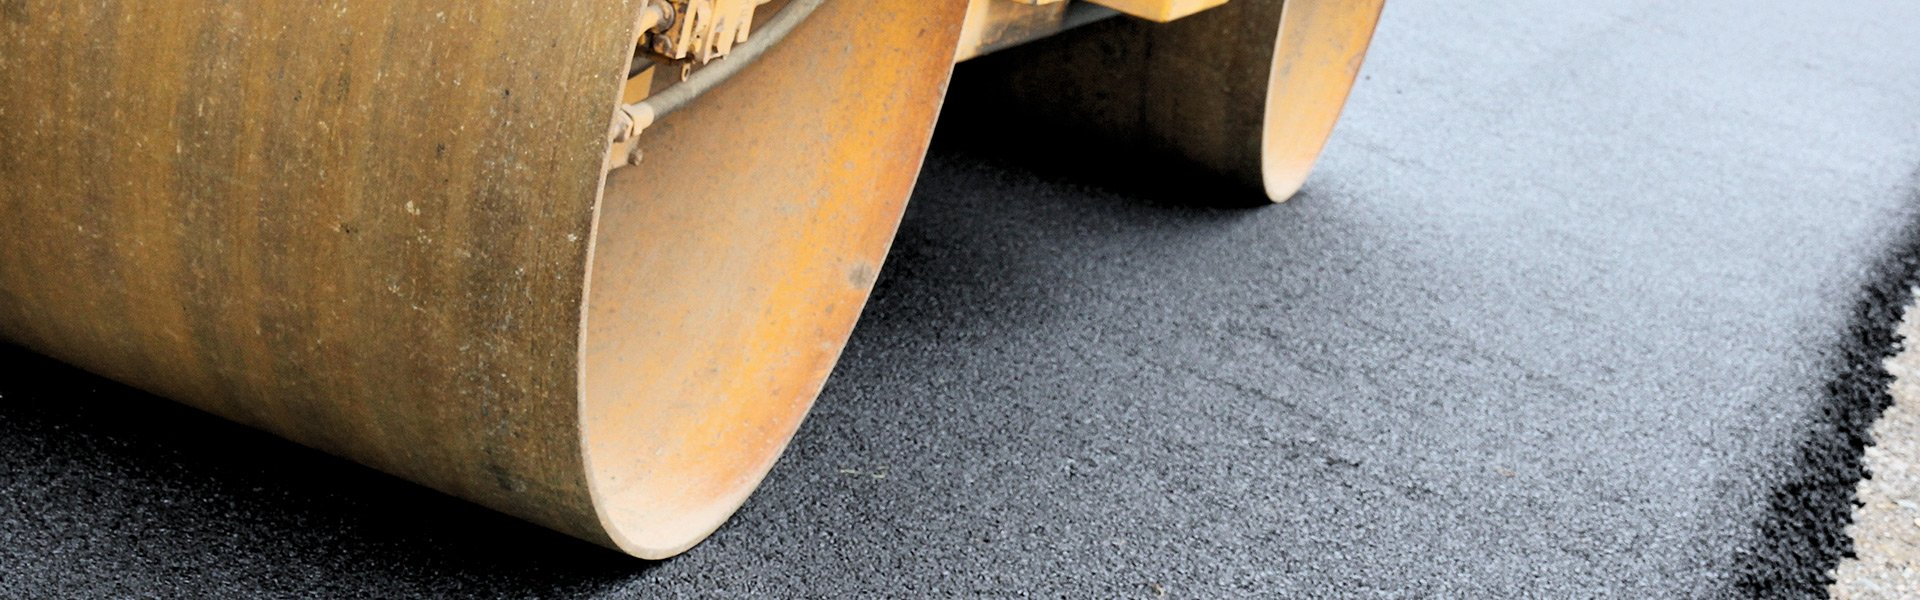 Paving contractor company